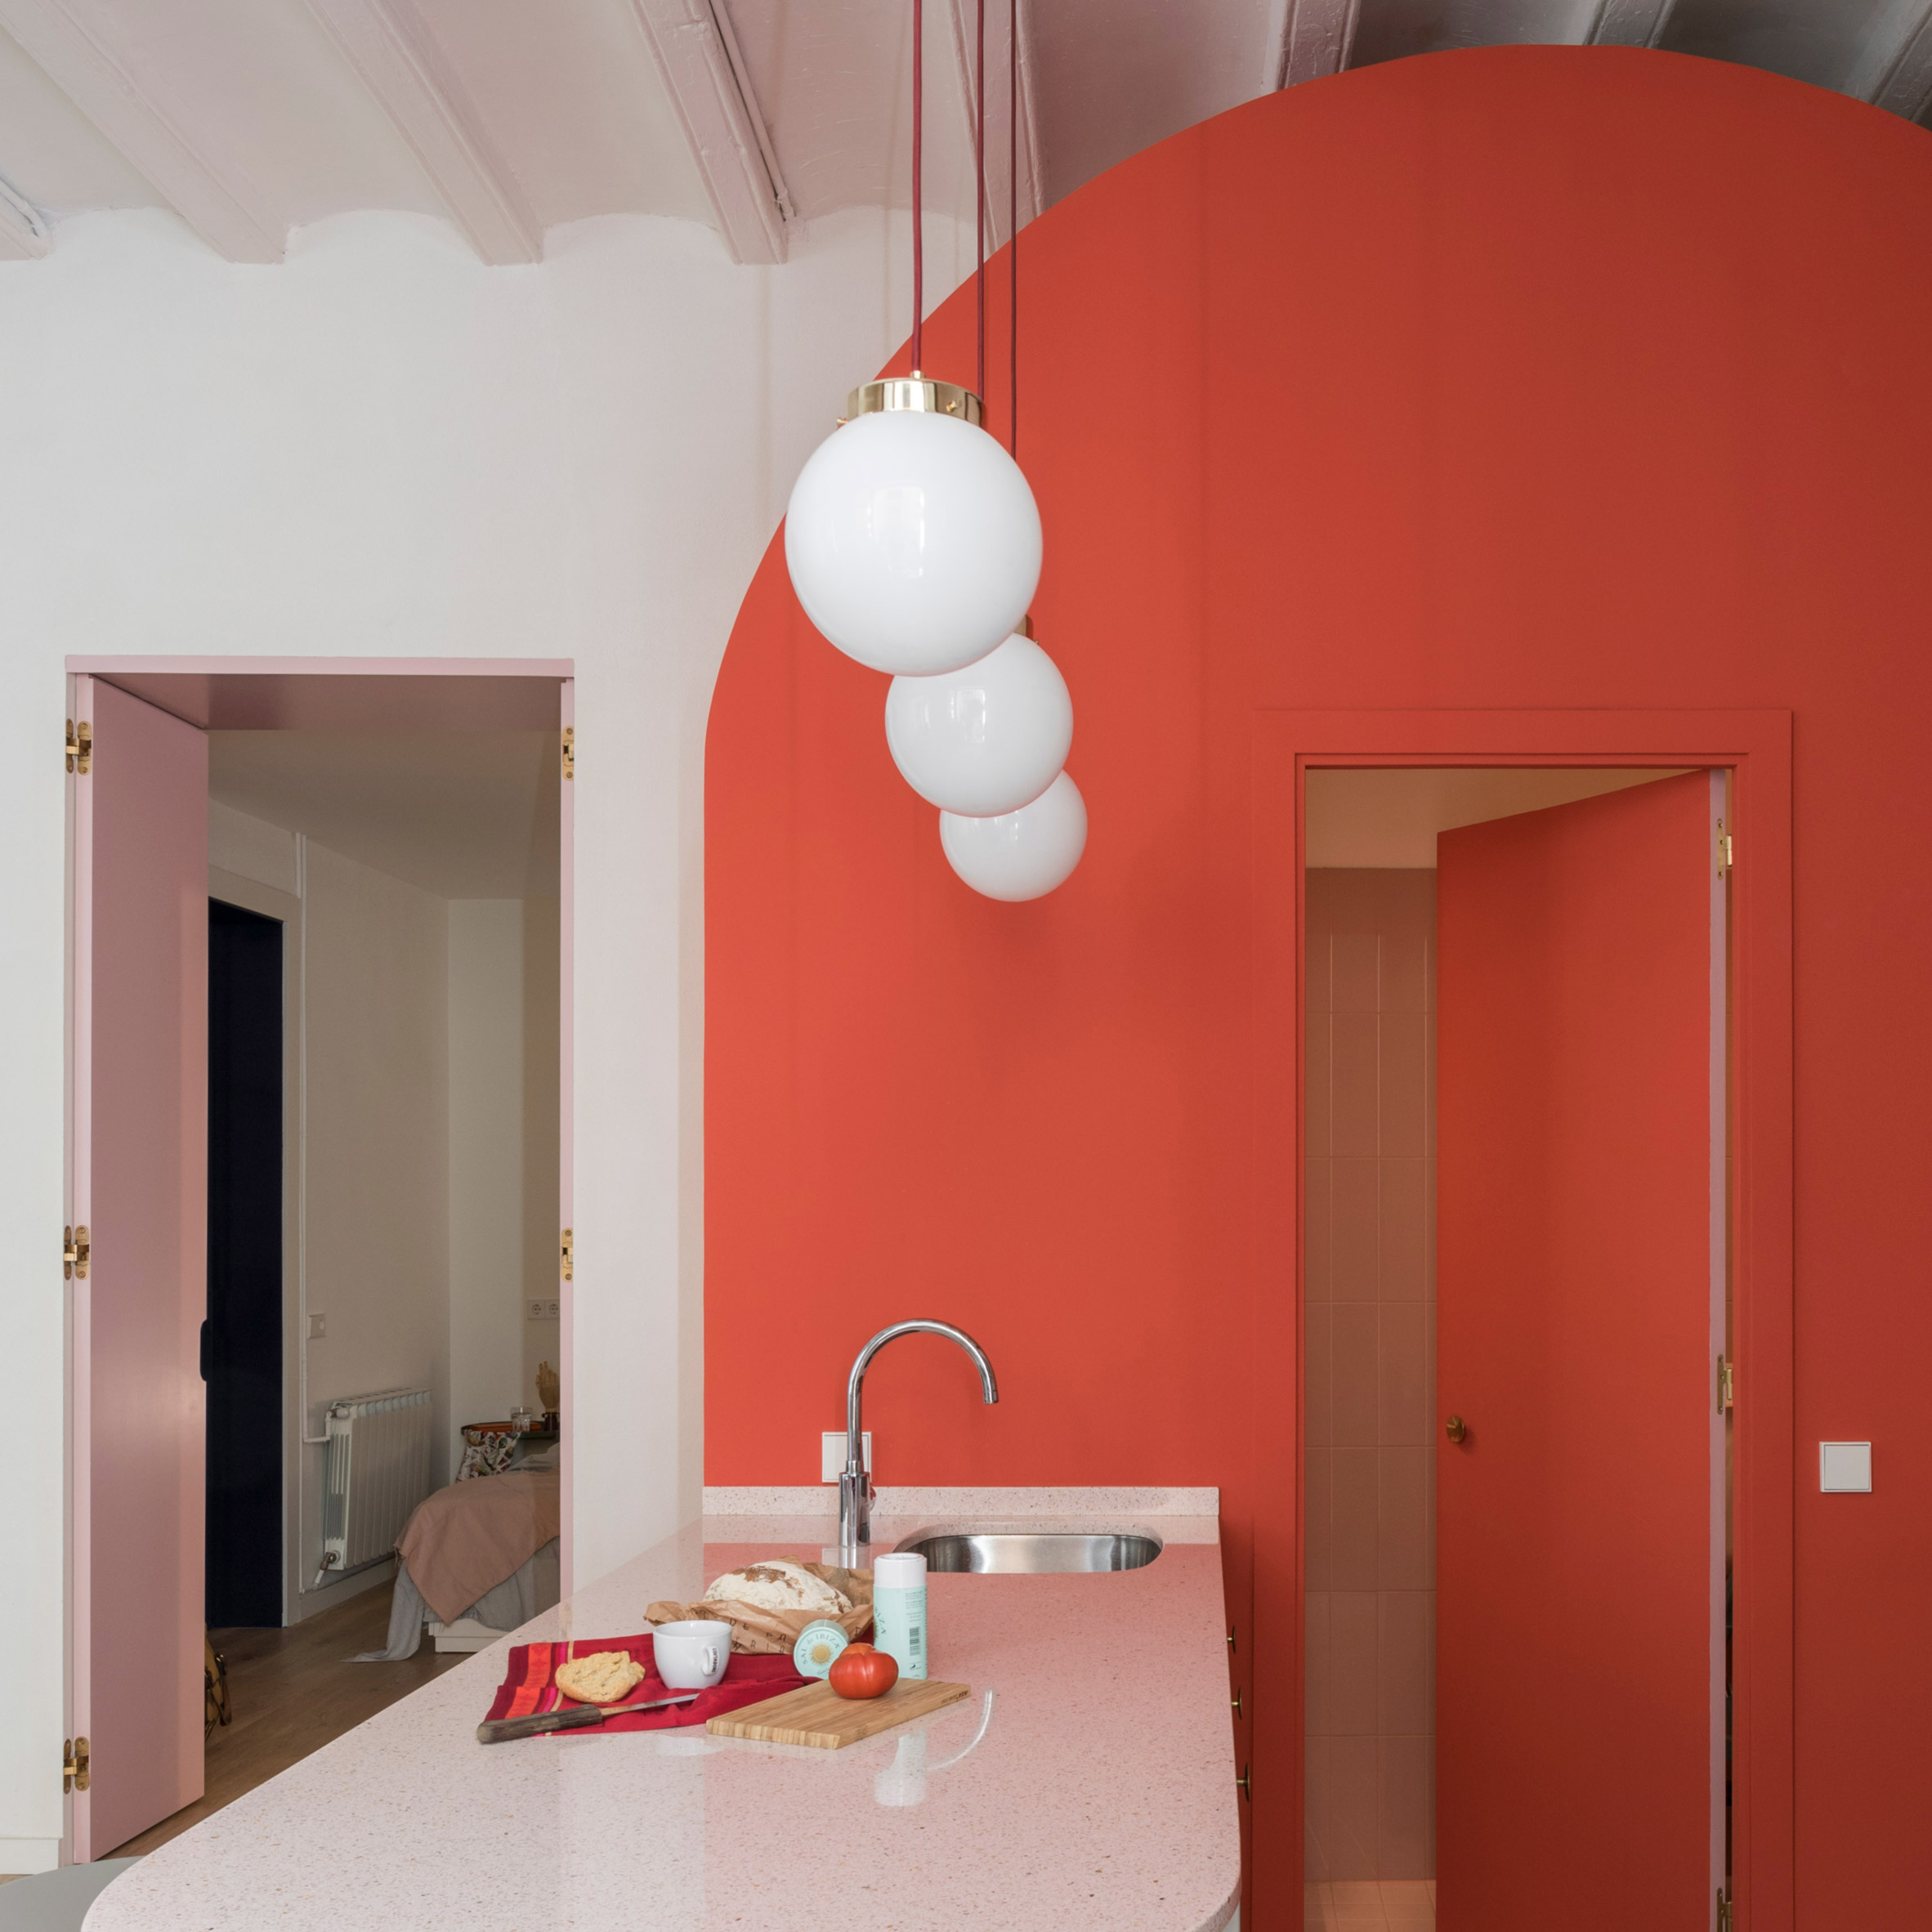 ApartAmentO EM Born, ESPANHA - Colombo and Serboli Architecture - FONTE: DEZEEN ARCHITECTURE AND DESIGN MAGAZINE